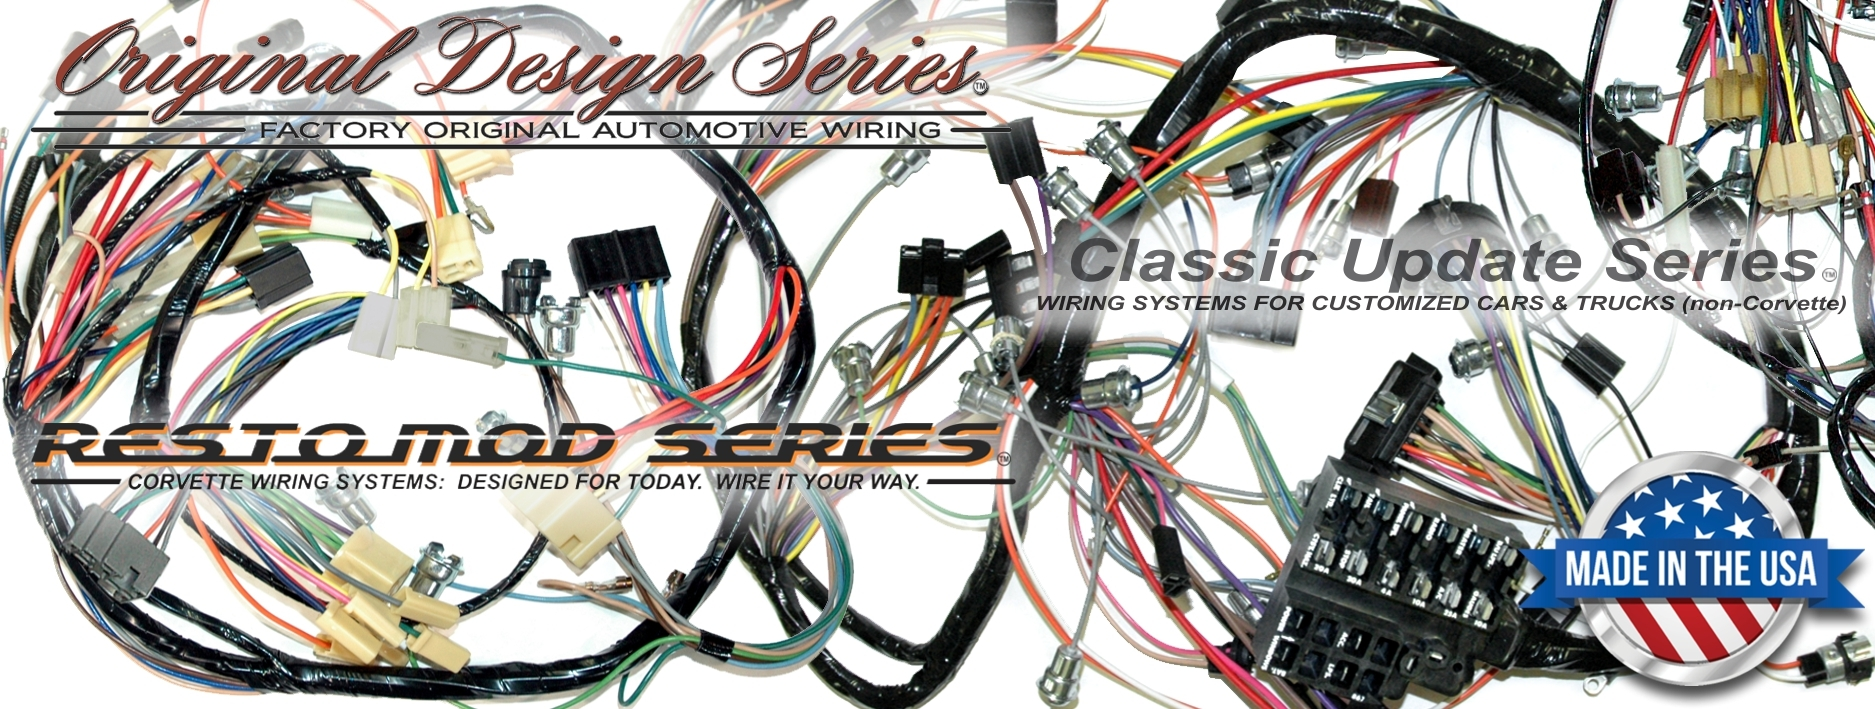 American Auto Wire Wiring Diagram from www.lectriclimited.com